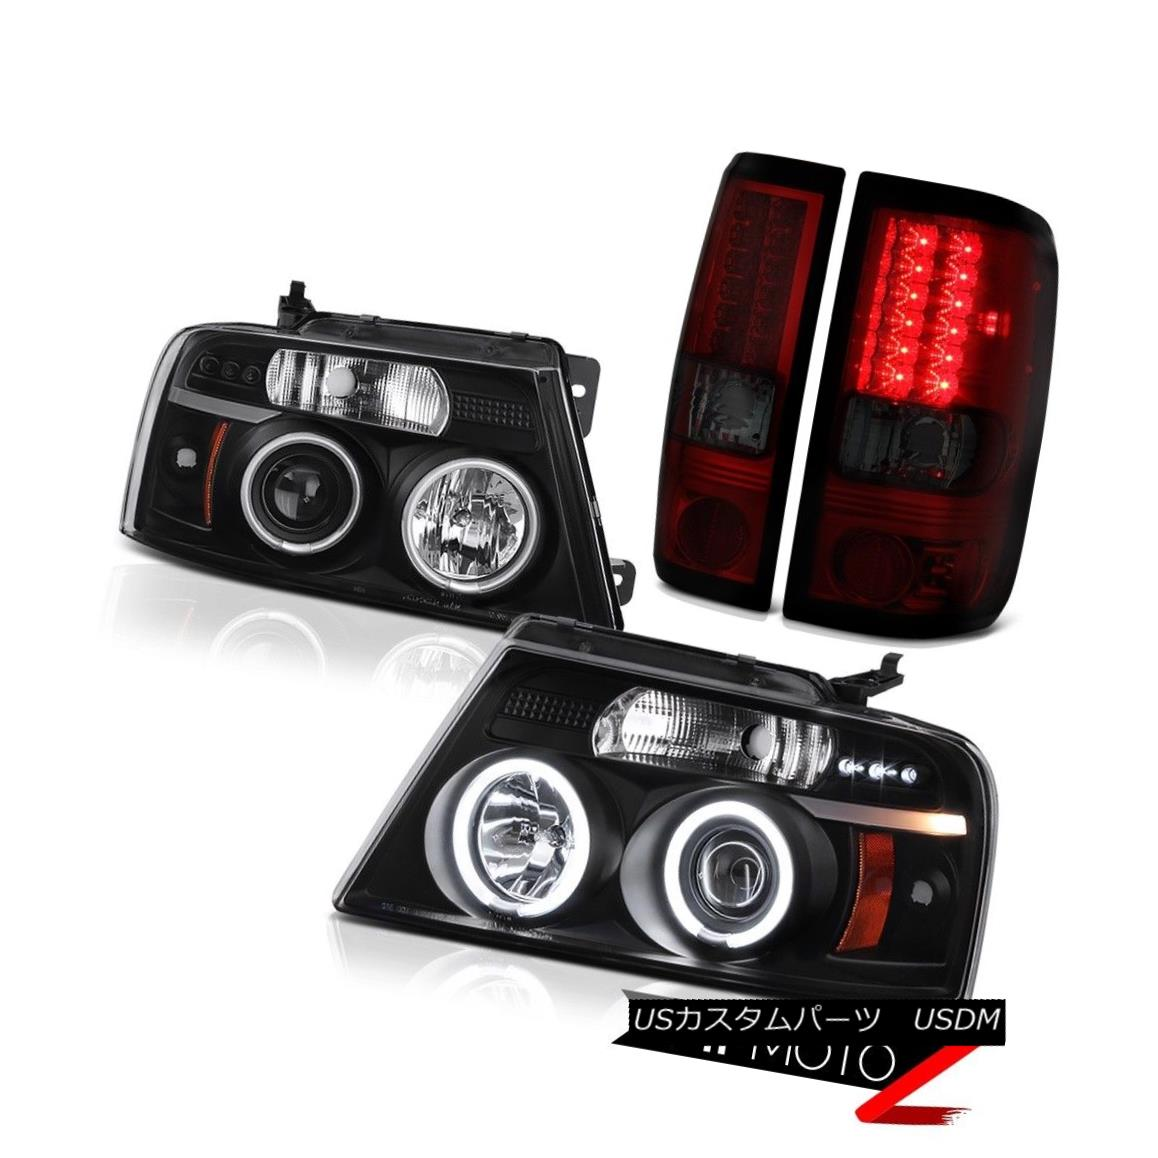 ヘッドライト 2004-2008 F150 PickUp WINE RED LED Brake Taillights Halo CCFL Power Headlights 2004-2008 F150 PickUpワインレッドLEDブレーキ灯台Halo CCFLパワーヘッドライト